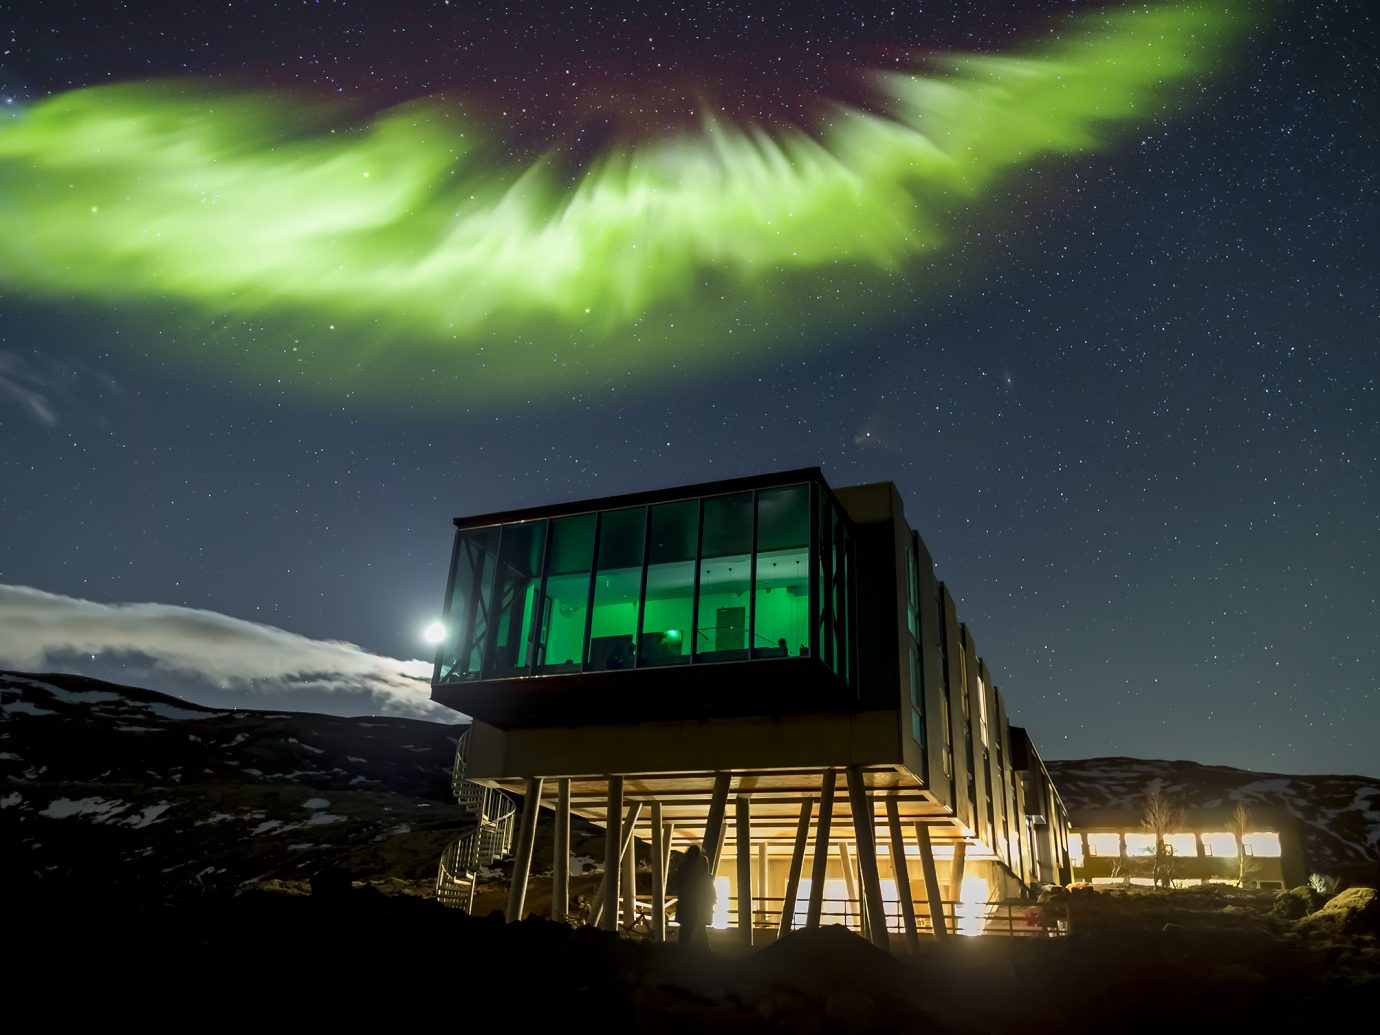 Exterior of ION Adventure Hotel on stilts at night with Northern Lights overhead